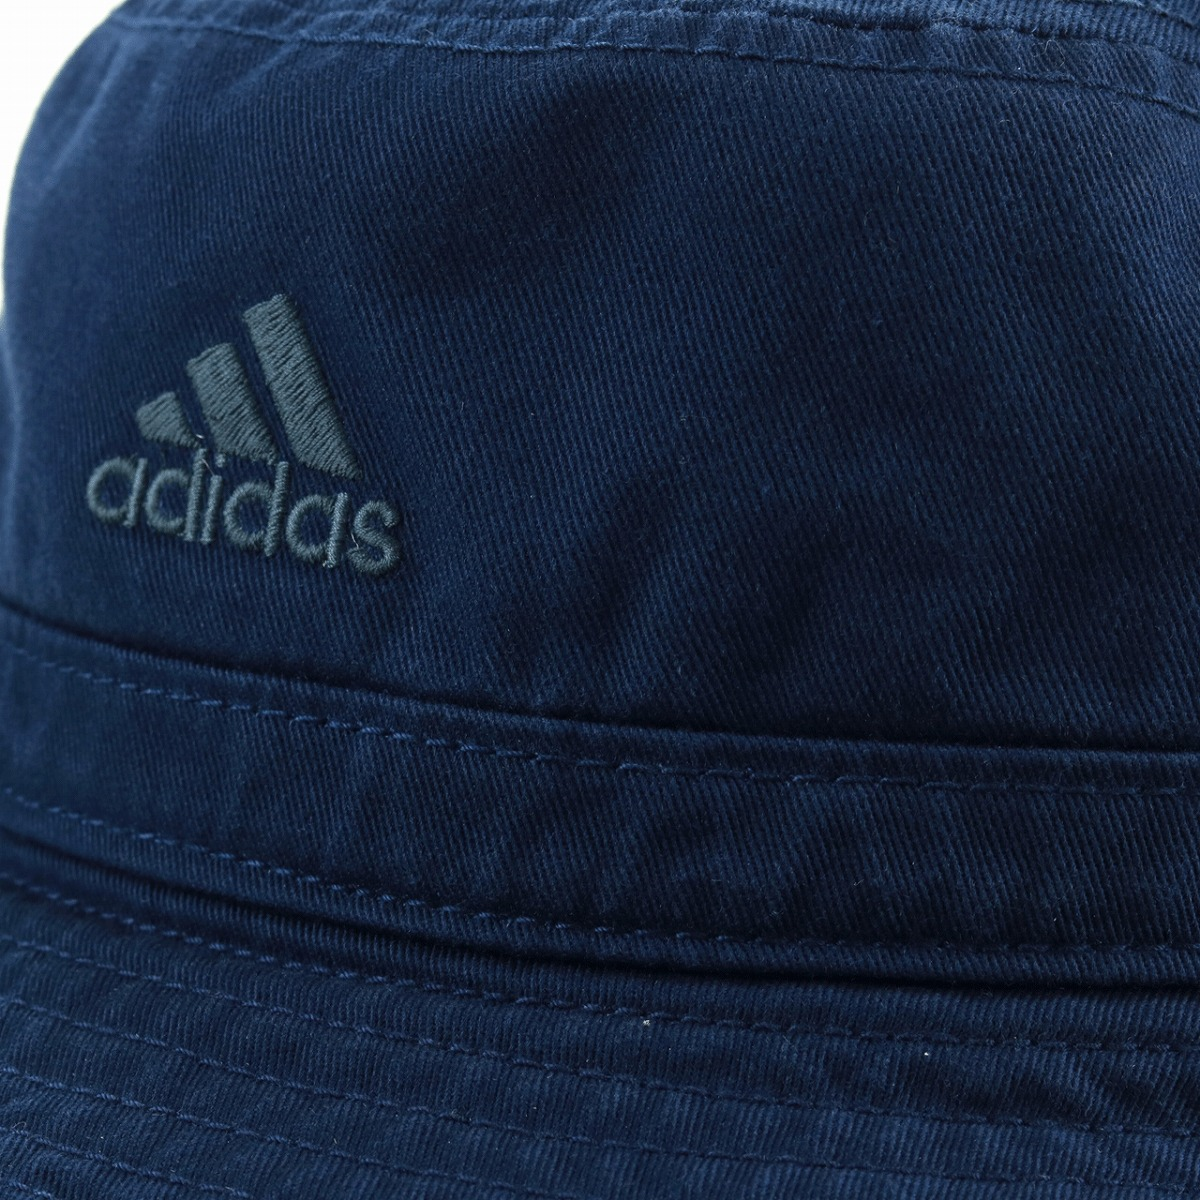 Safari hat men adidas hat Adidas Sakha re-hat awning hat man and woman combined use sports mixture coordinates hat Shin pull lady's fast-dry 58cm outdoor outdoors festival / dark blue navy [bucket hat] Father's Day gift present in the spring and summer